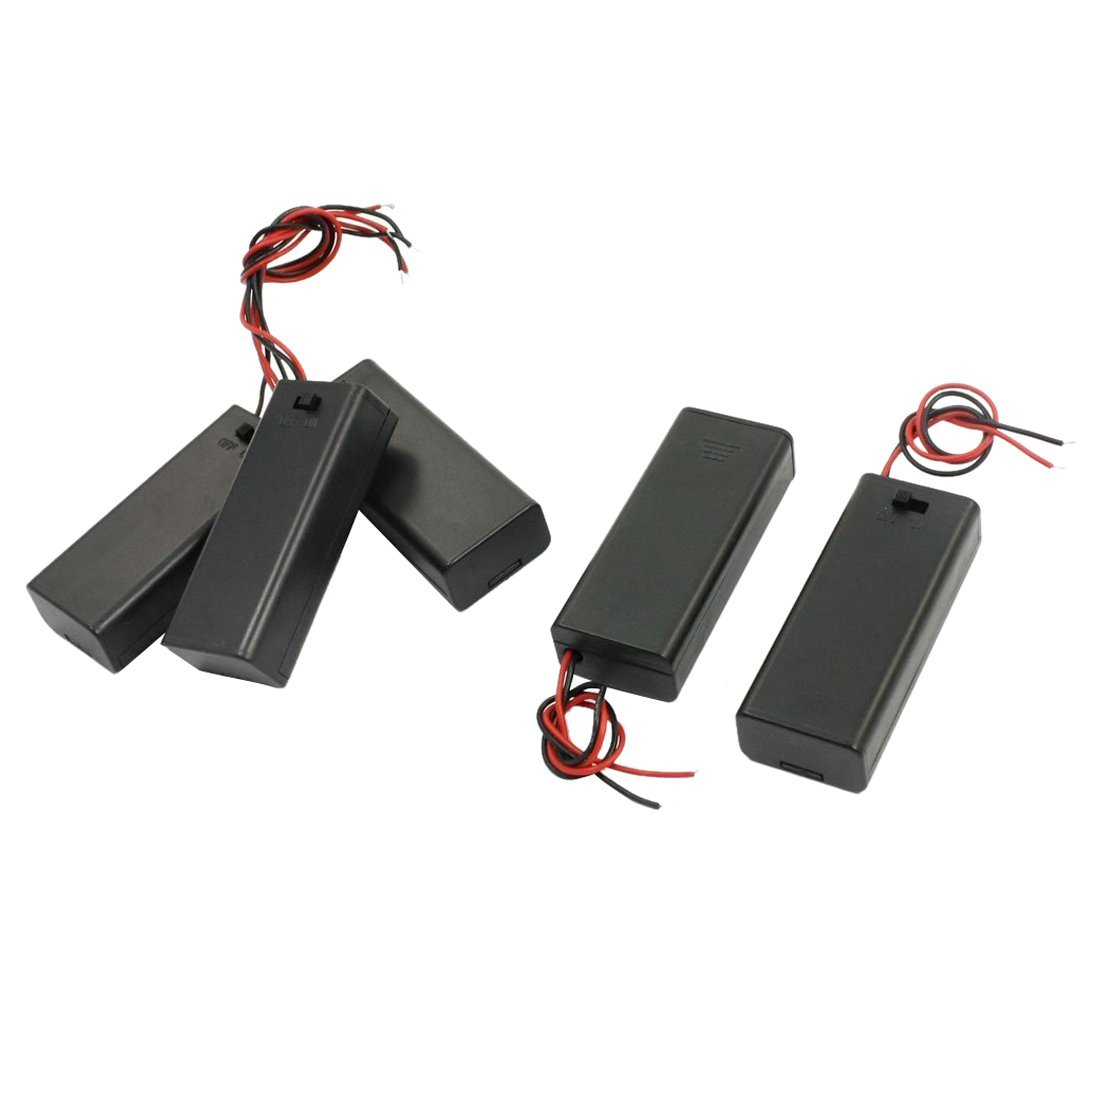 Battery Holder - TOOGOO(R) 5 PCS Black Shell 2 x 1.5V AAA Battery Holder Case Container Cell Box